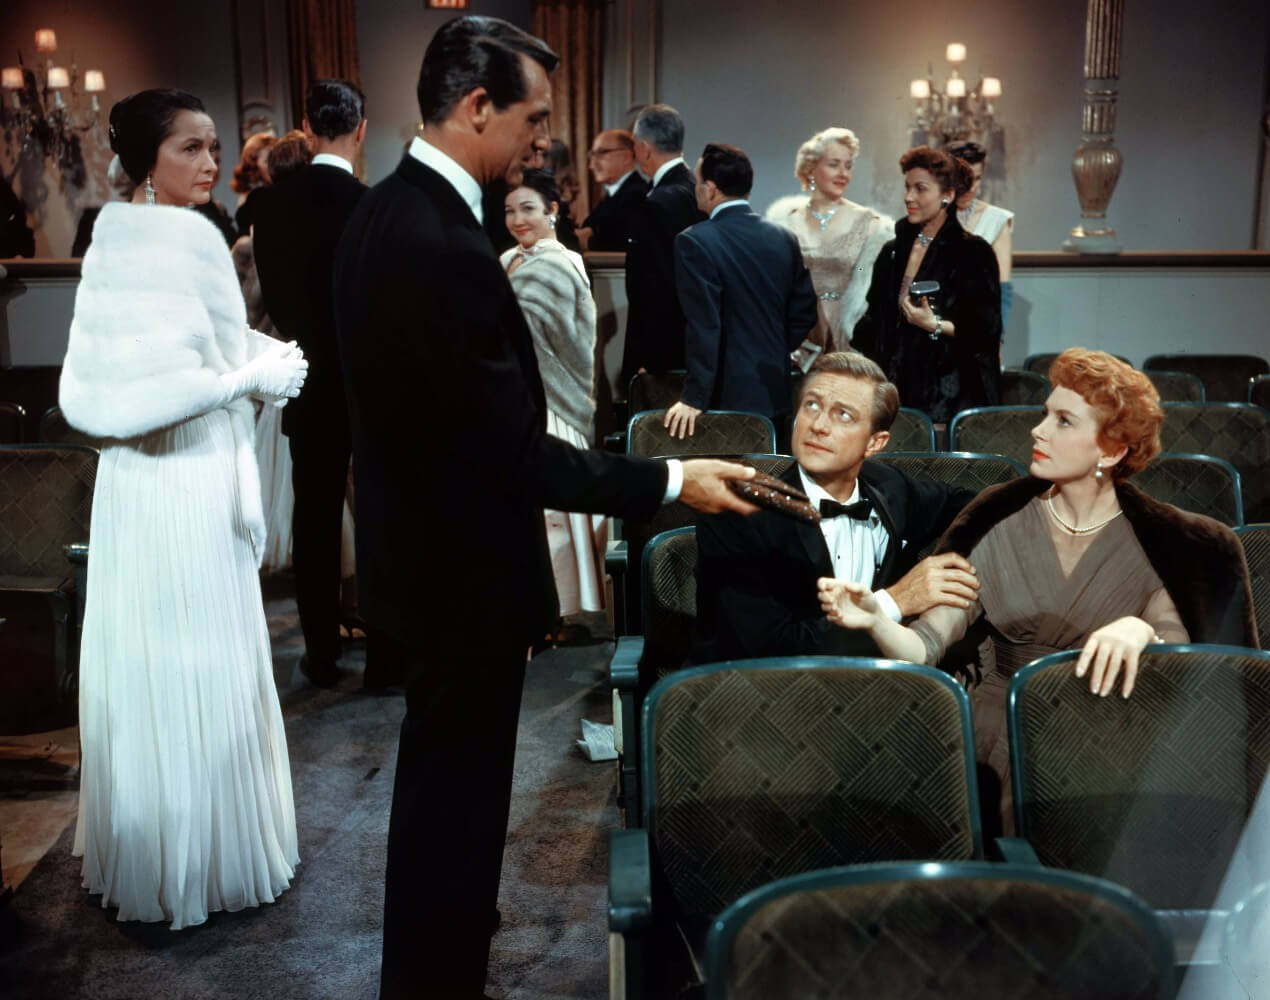 Cary Grant and Deborah Kerr in scene from An Affair to Remember